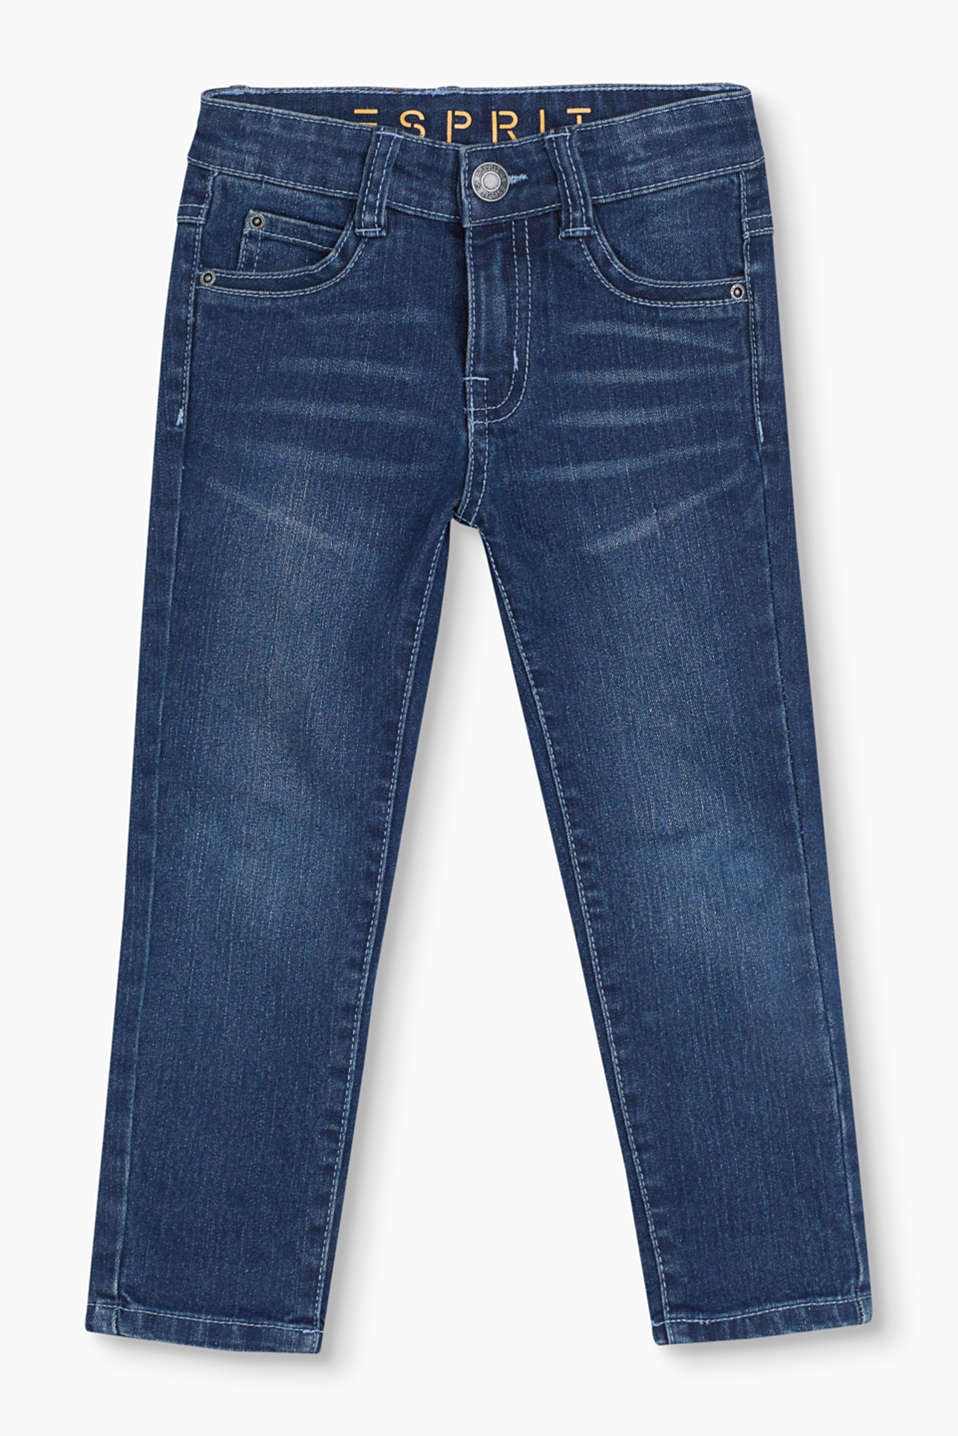 These 5 pocket jeans in soft stretch denim in blended cotton and with a practical adjustable waistband are mega comfy.